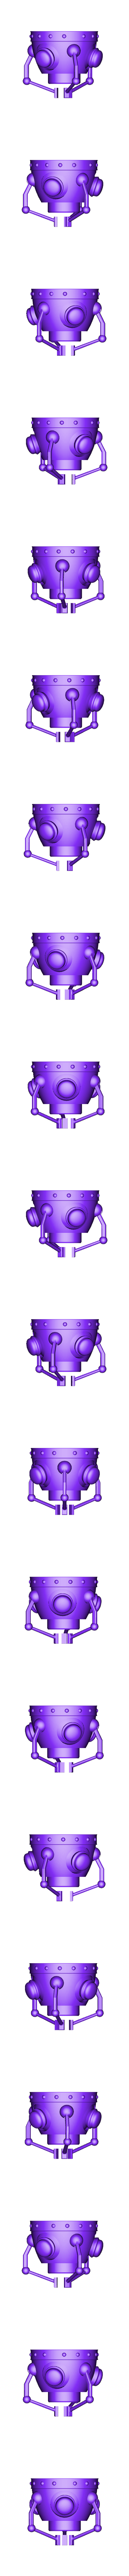 Body_front.stl Download free STL file Raygun • 3D print template, cmoore1